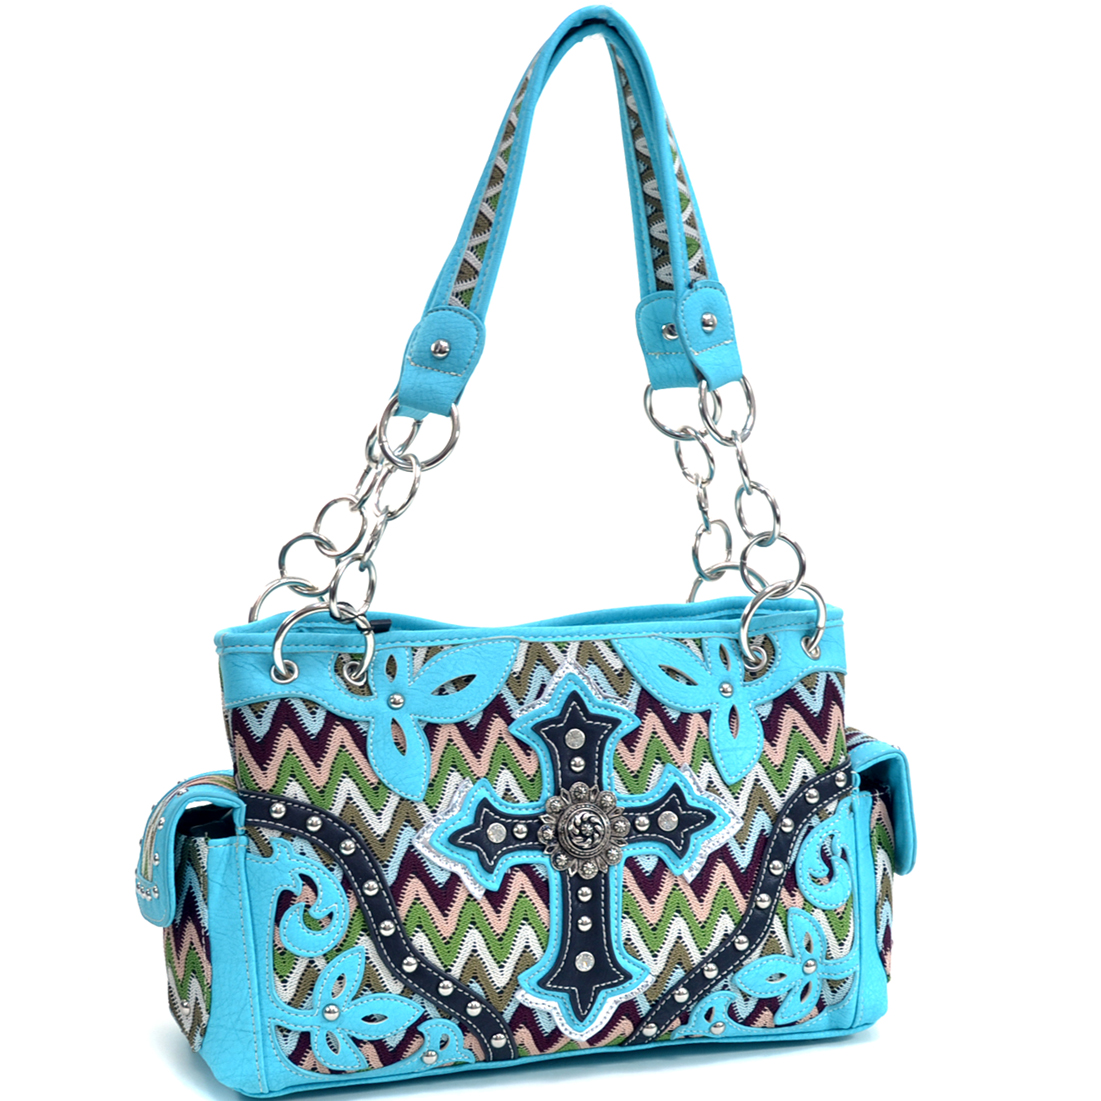 Western Style Cross Studded Concho Crochet Fabric Shoulder Bag